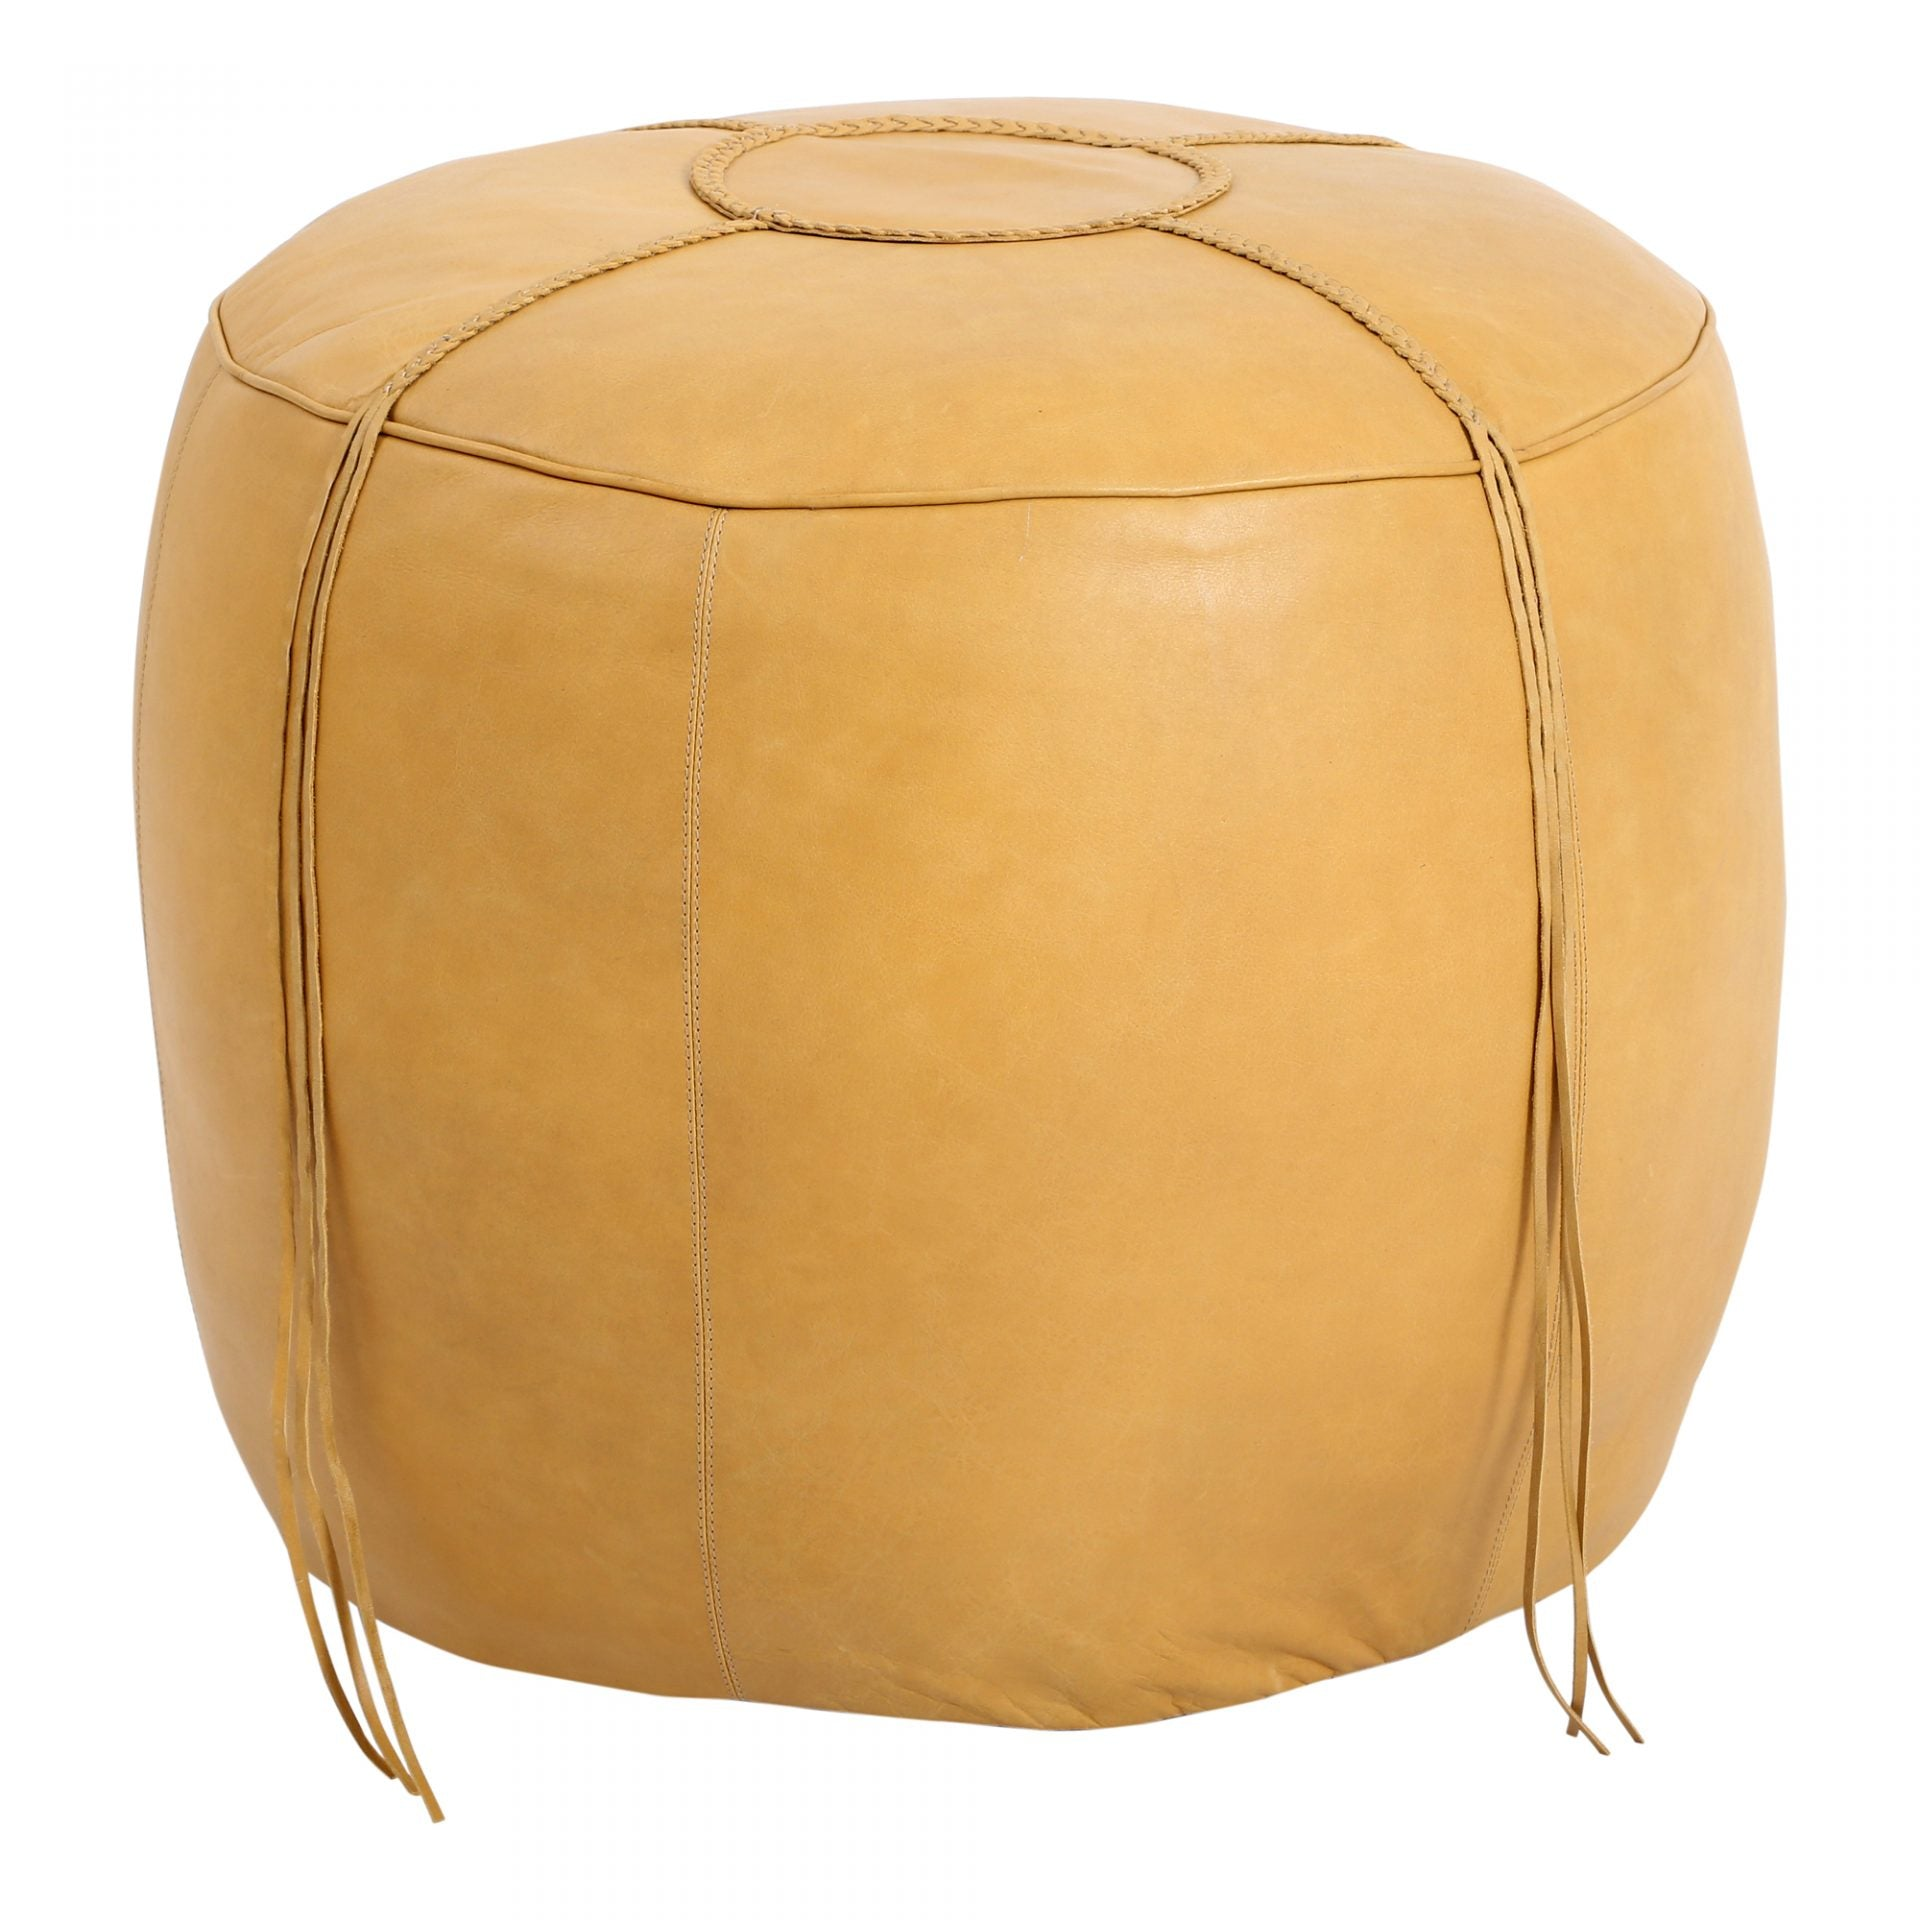 METTEO LEATHER OTTOMAN - NATURAL